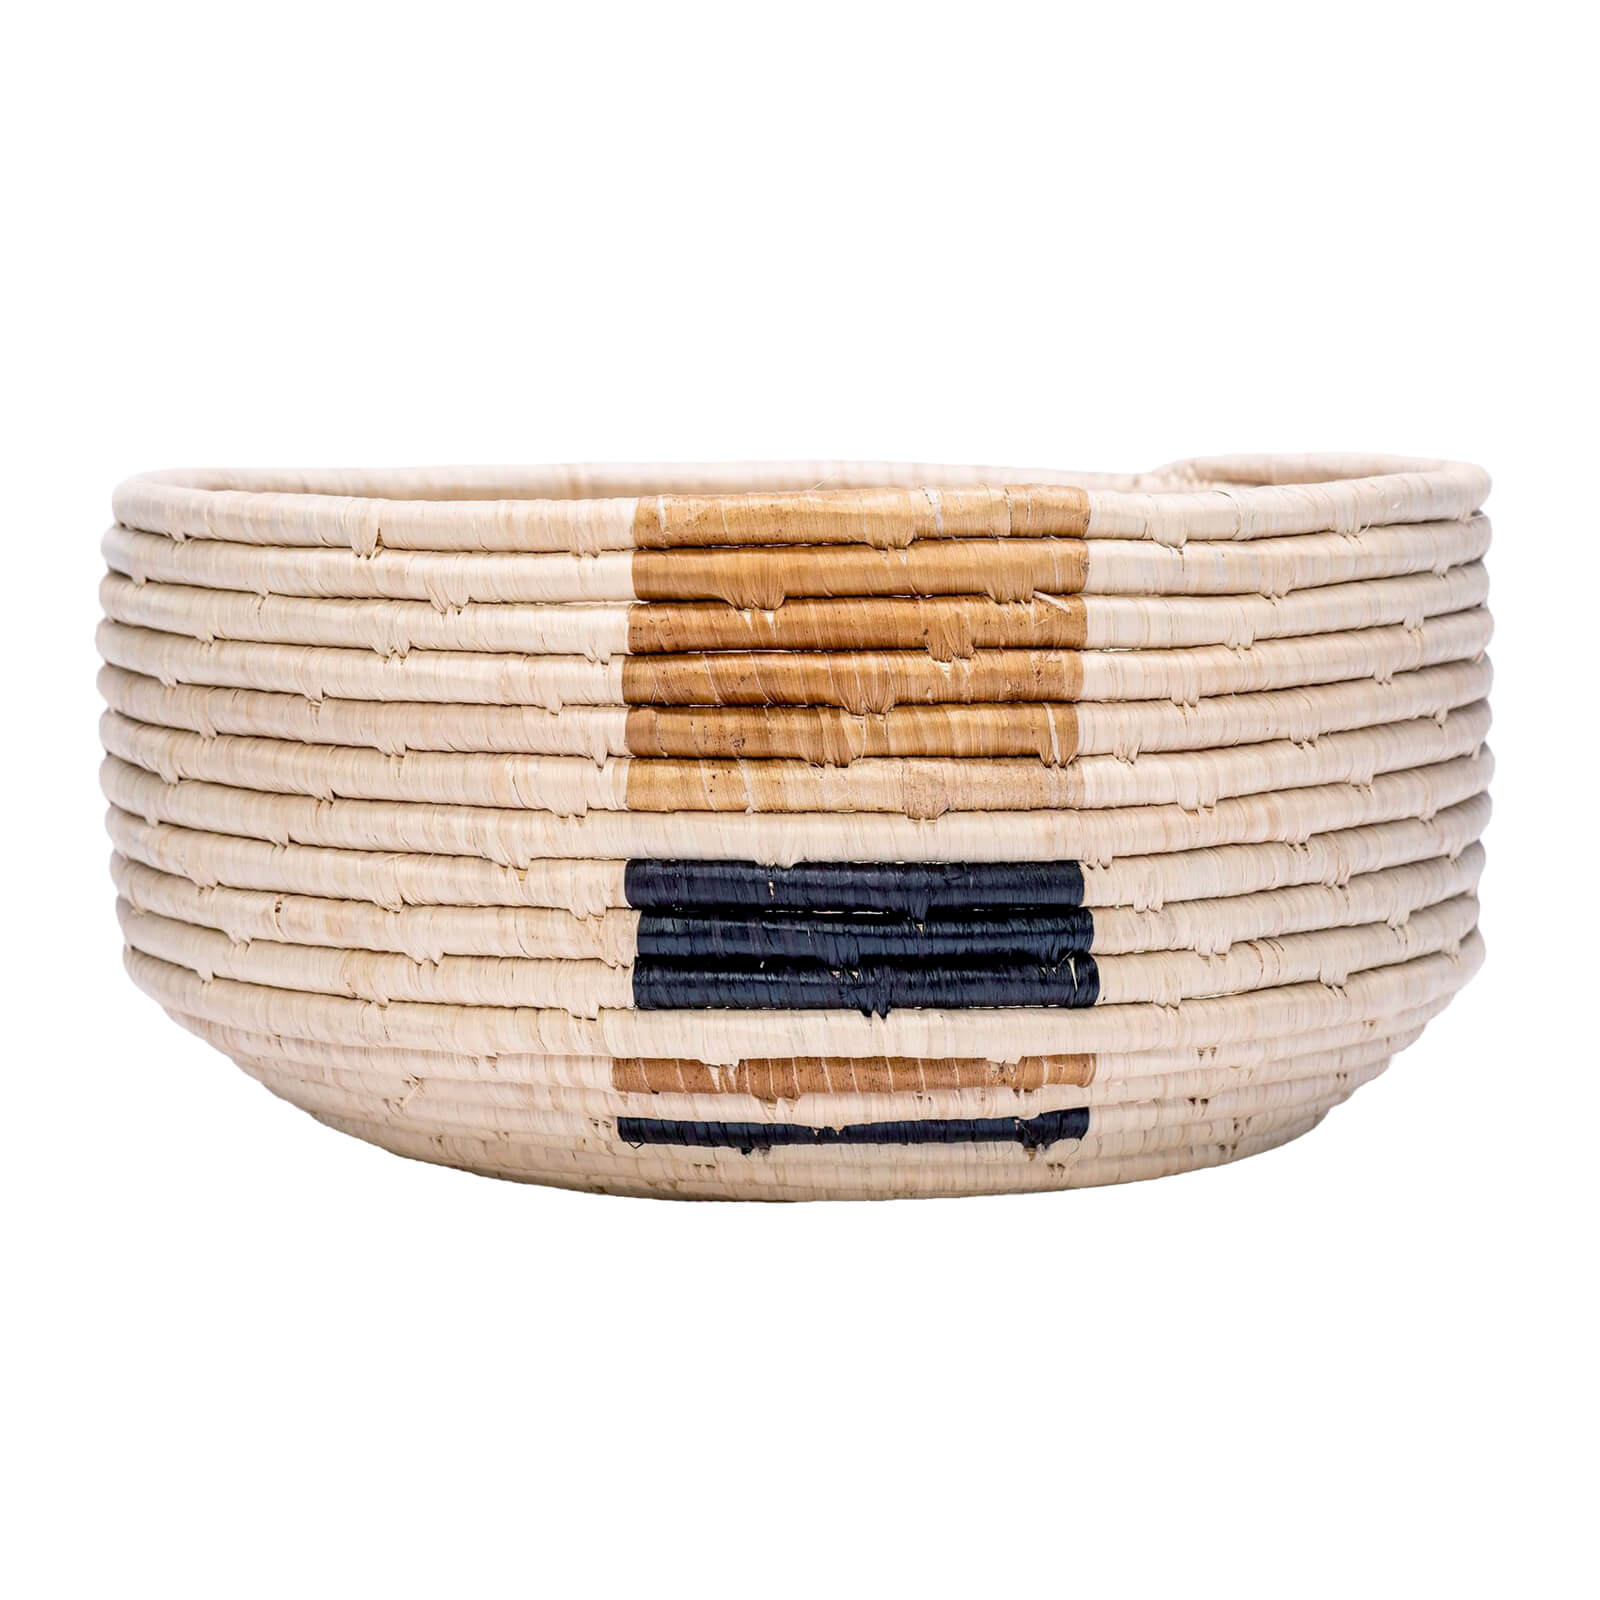 Deep Woven Bowl with Banana Leaf Accents - Medium